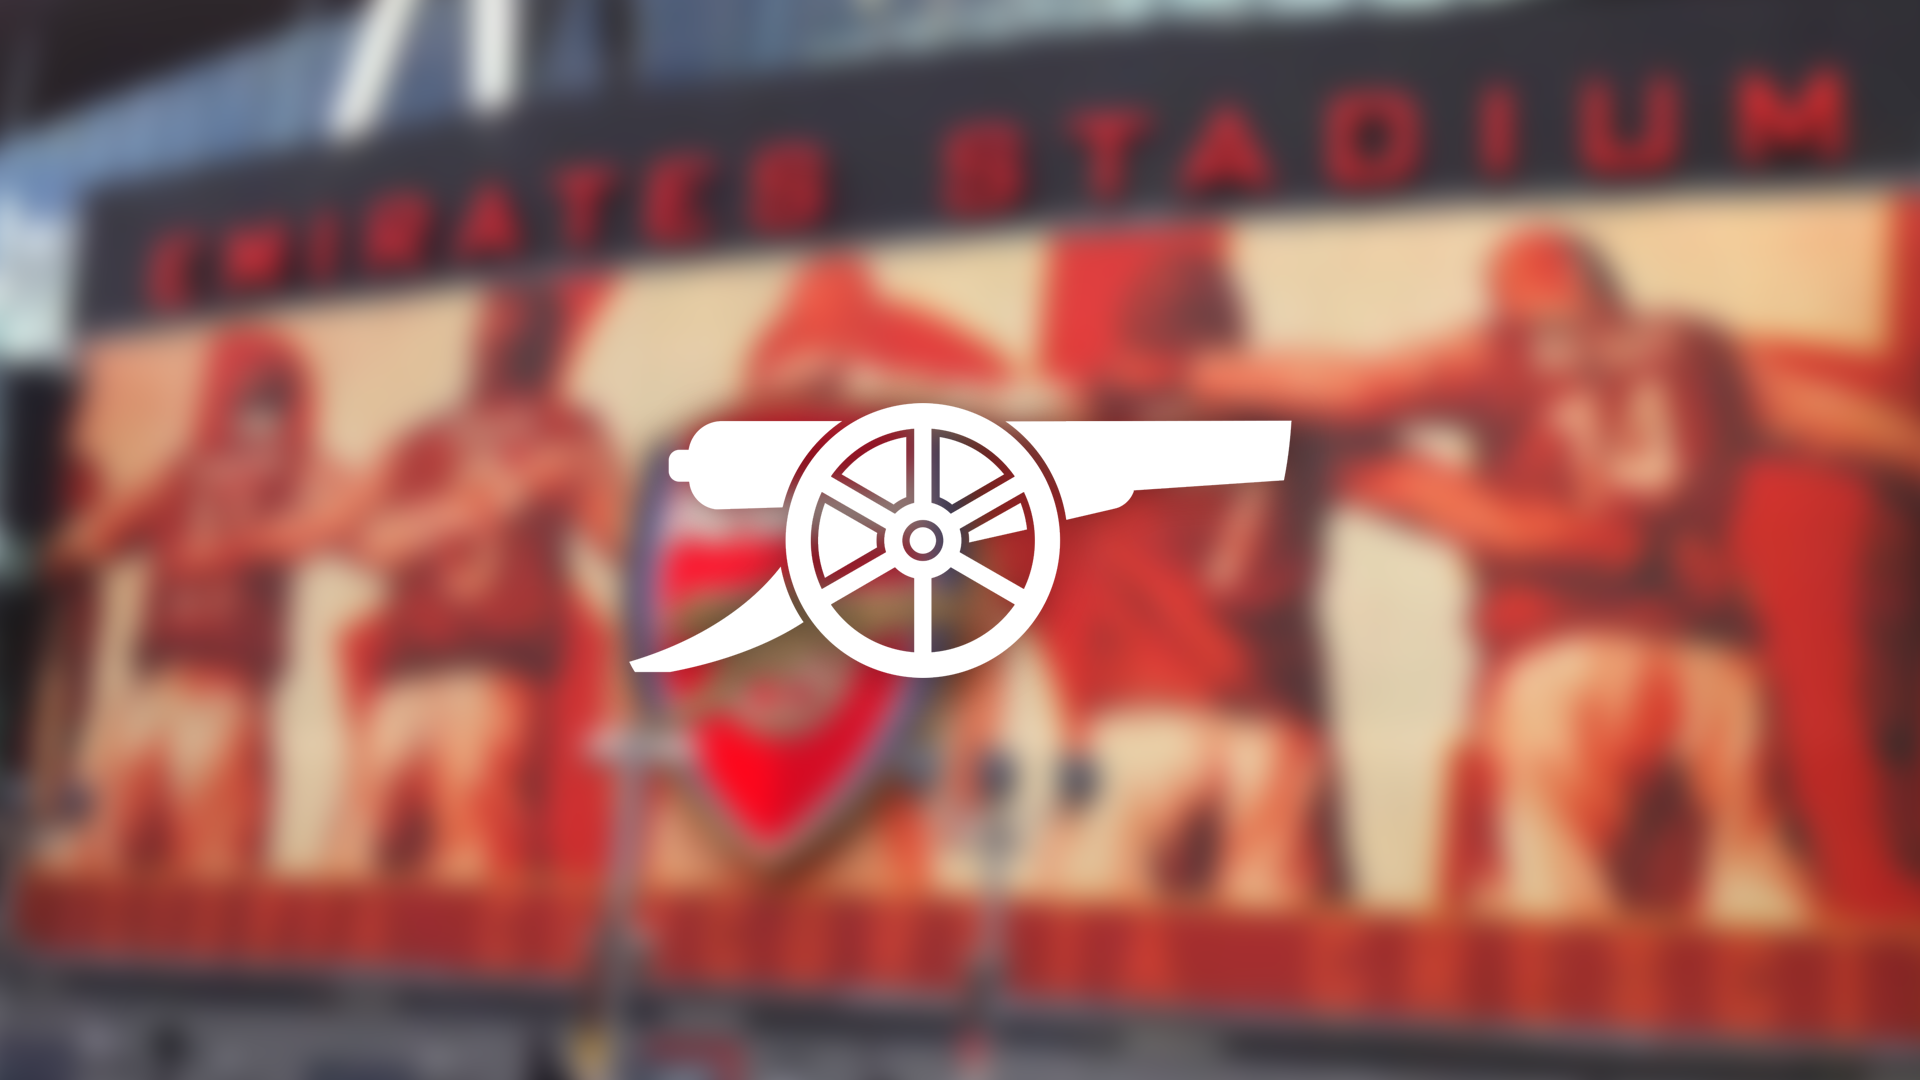 Made A Simple Arsenal Wallpaper 1080x1920 Emirates Stadium 131264 Hd Wallpaper Backgrounds Download